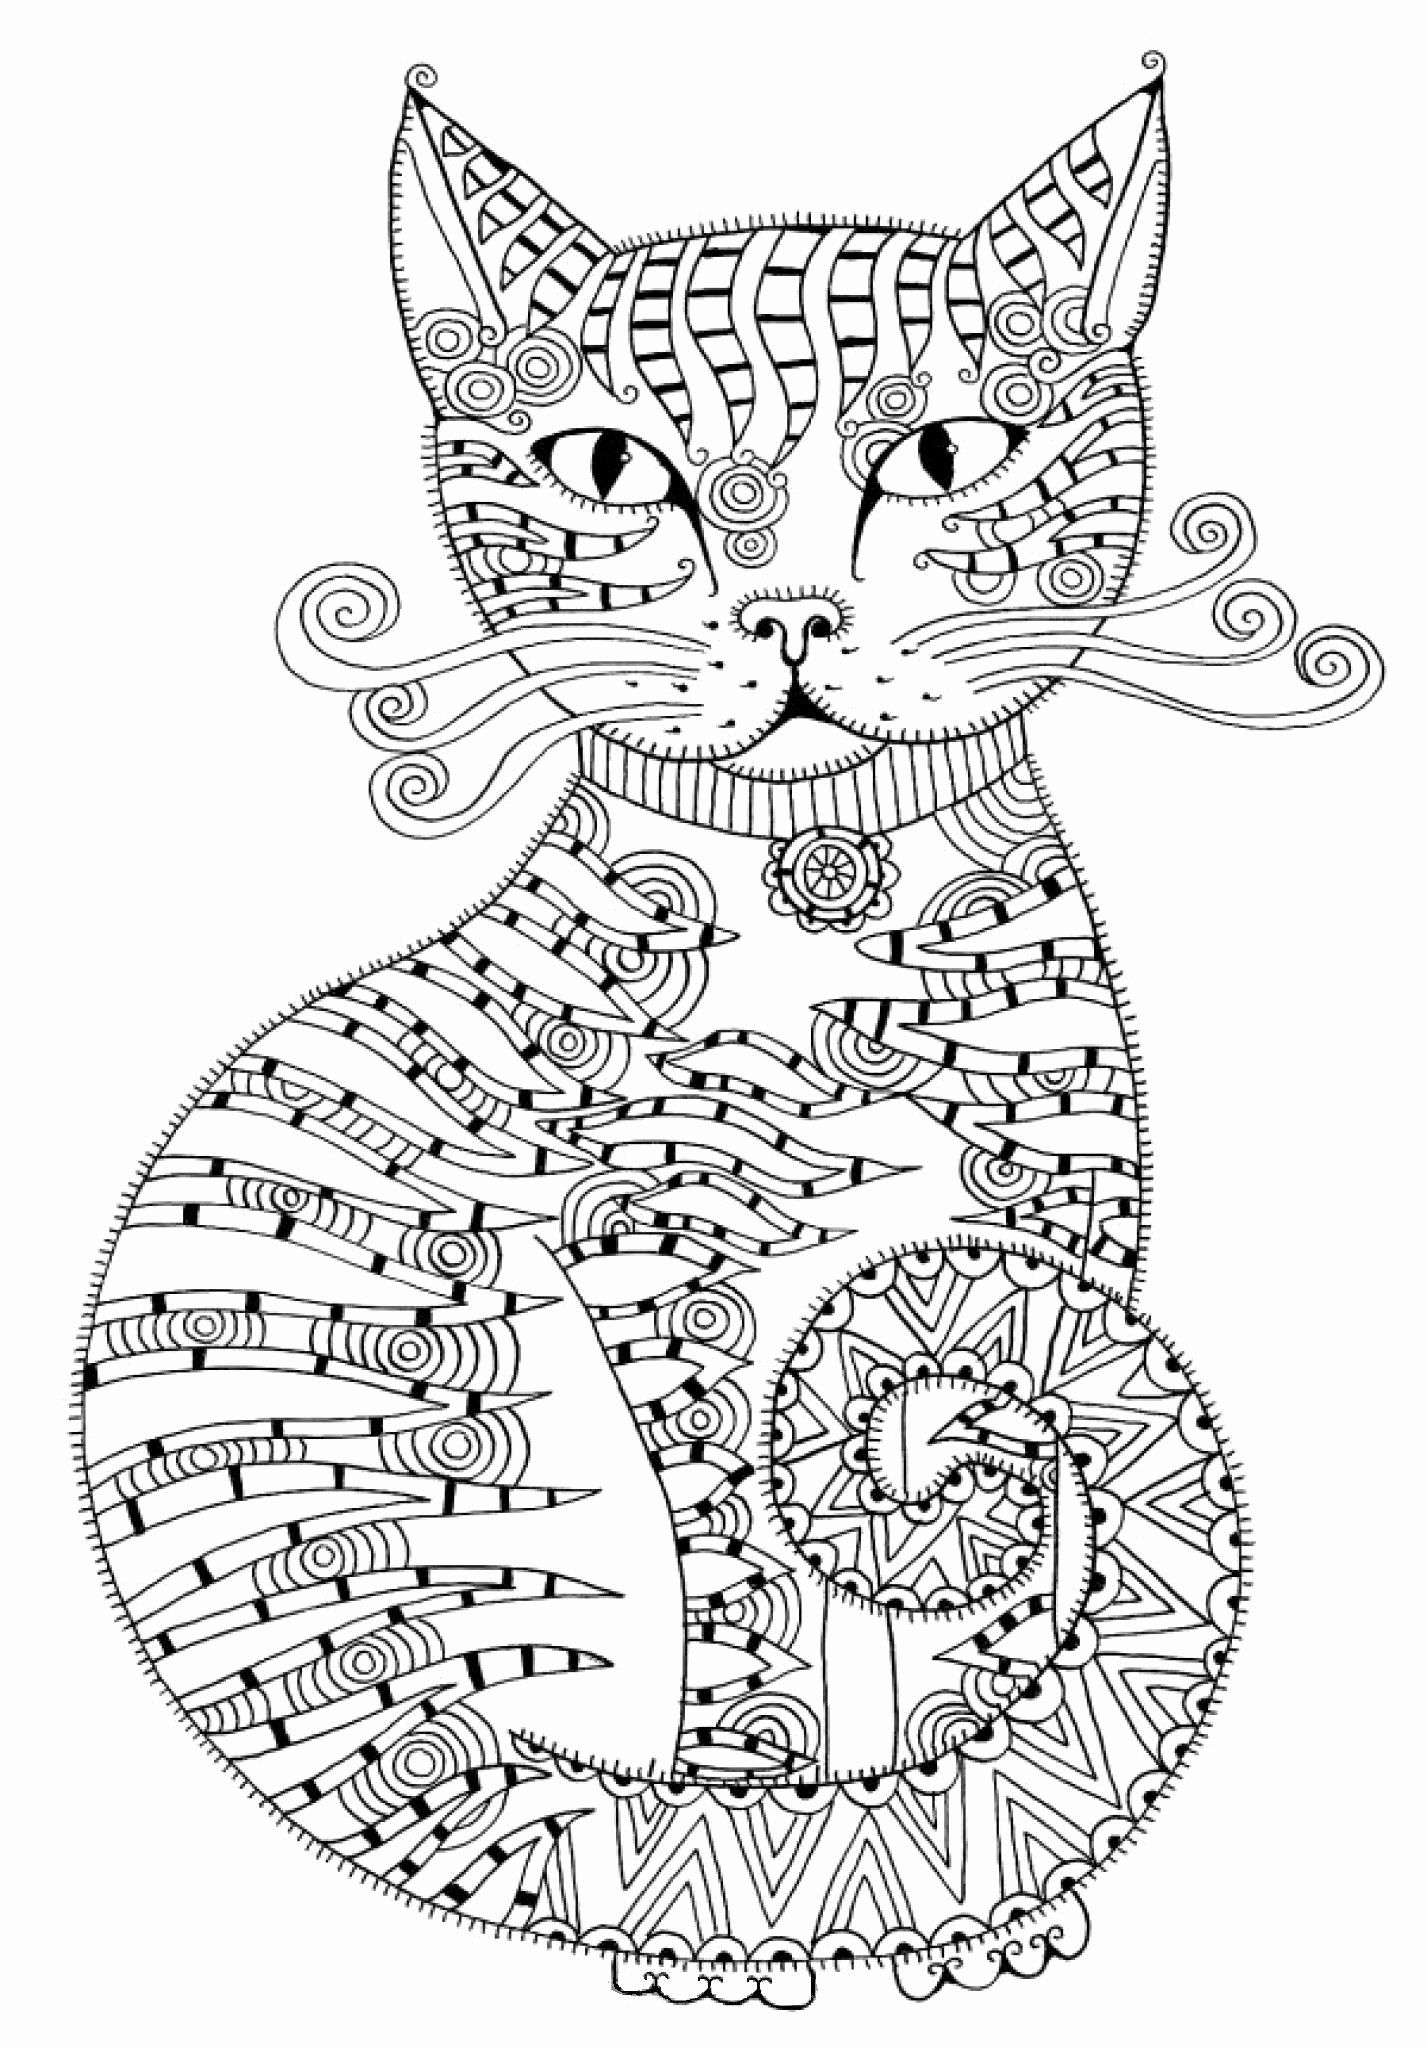 Space Dog Coloring Page With Images Cat Coloring Book Cat